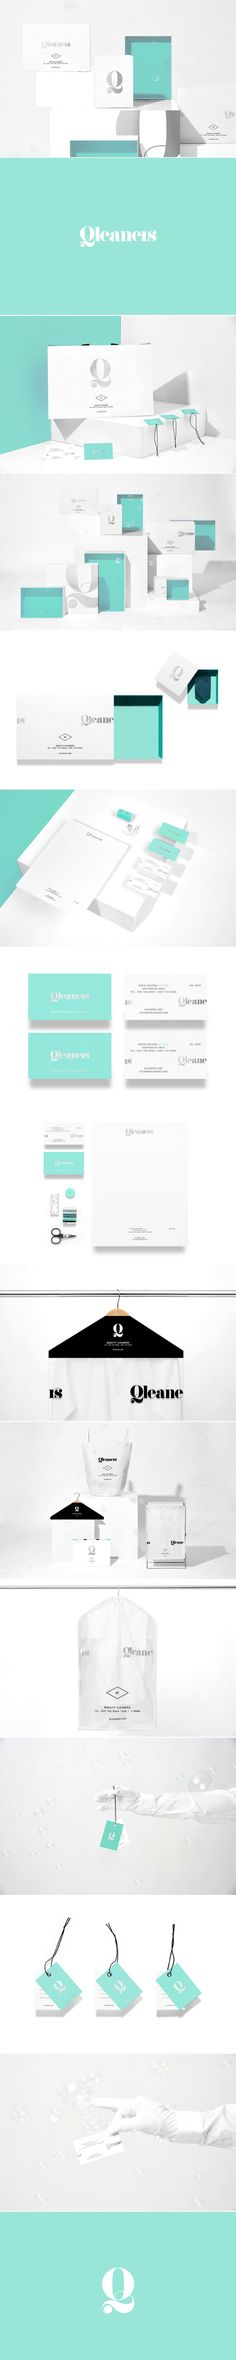 Qleaners is a Unique Laundry Service With a Luxurious Feel — The Dieline | Packaging & Branding Design & Innovation News